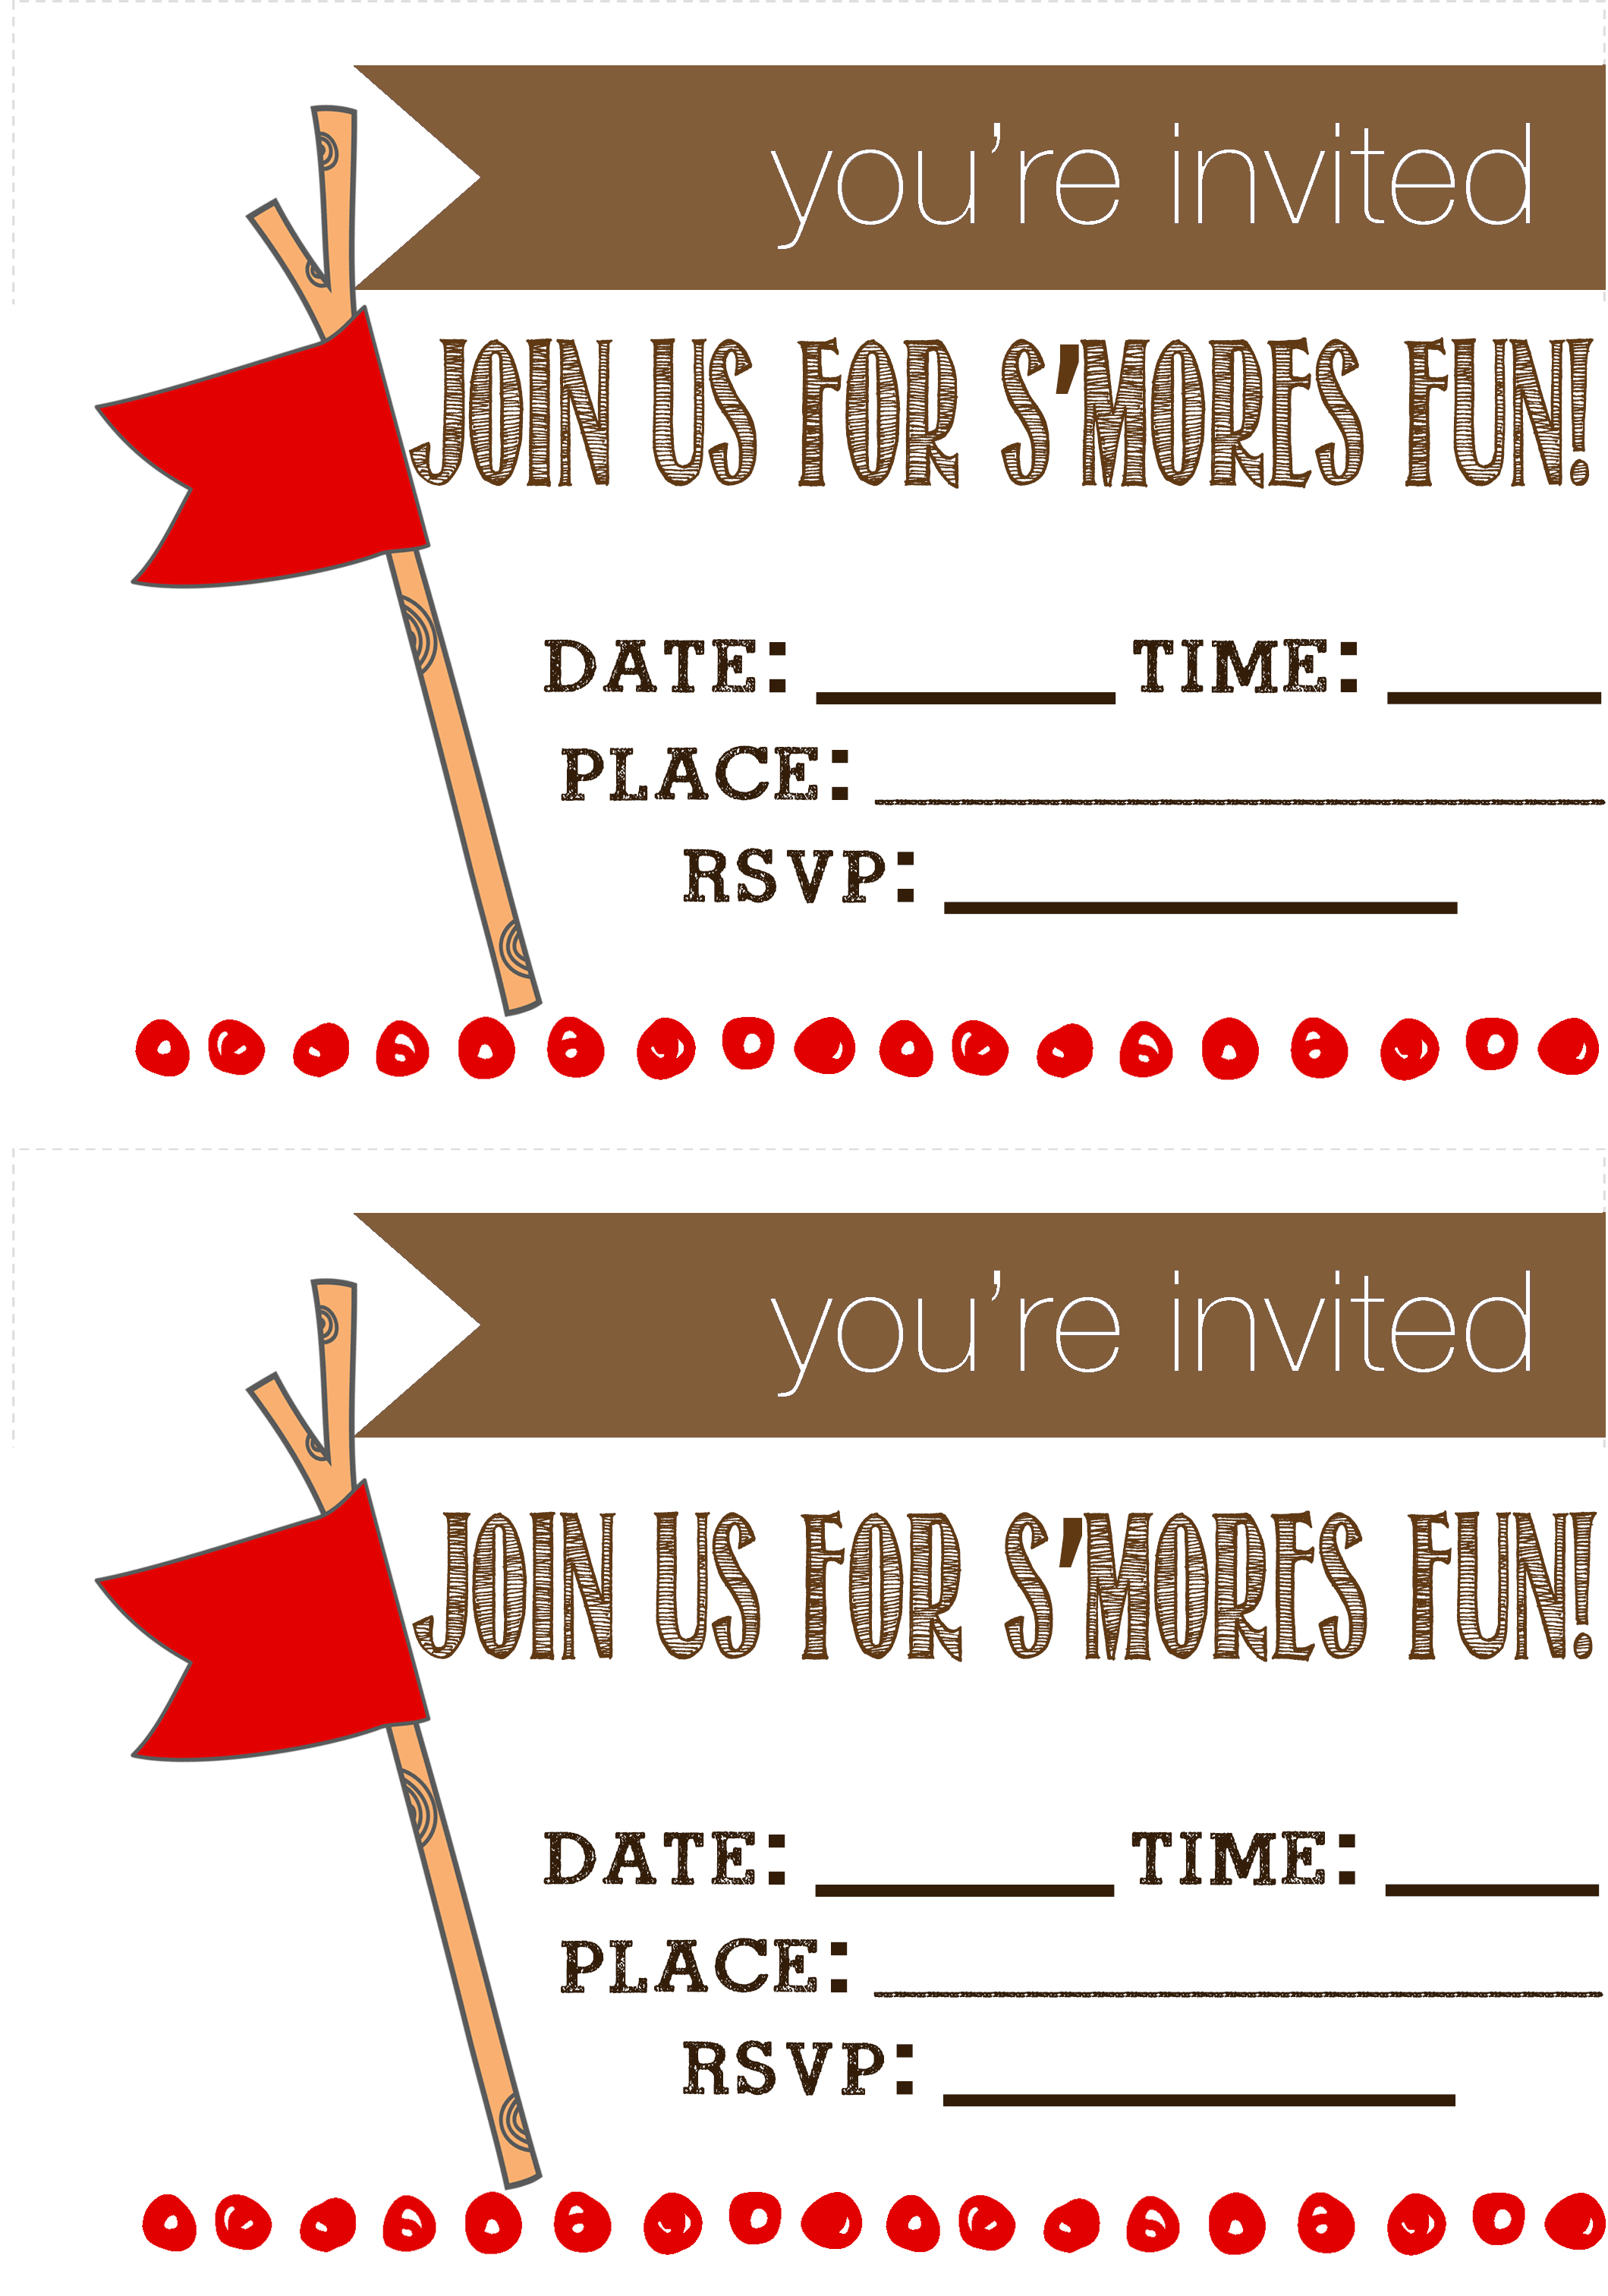 Download Your Invitations Here To Make Fourth Of July Party Awesome